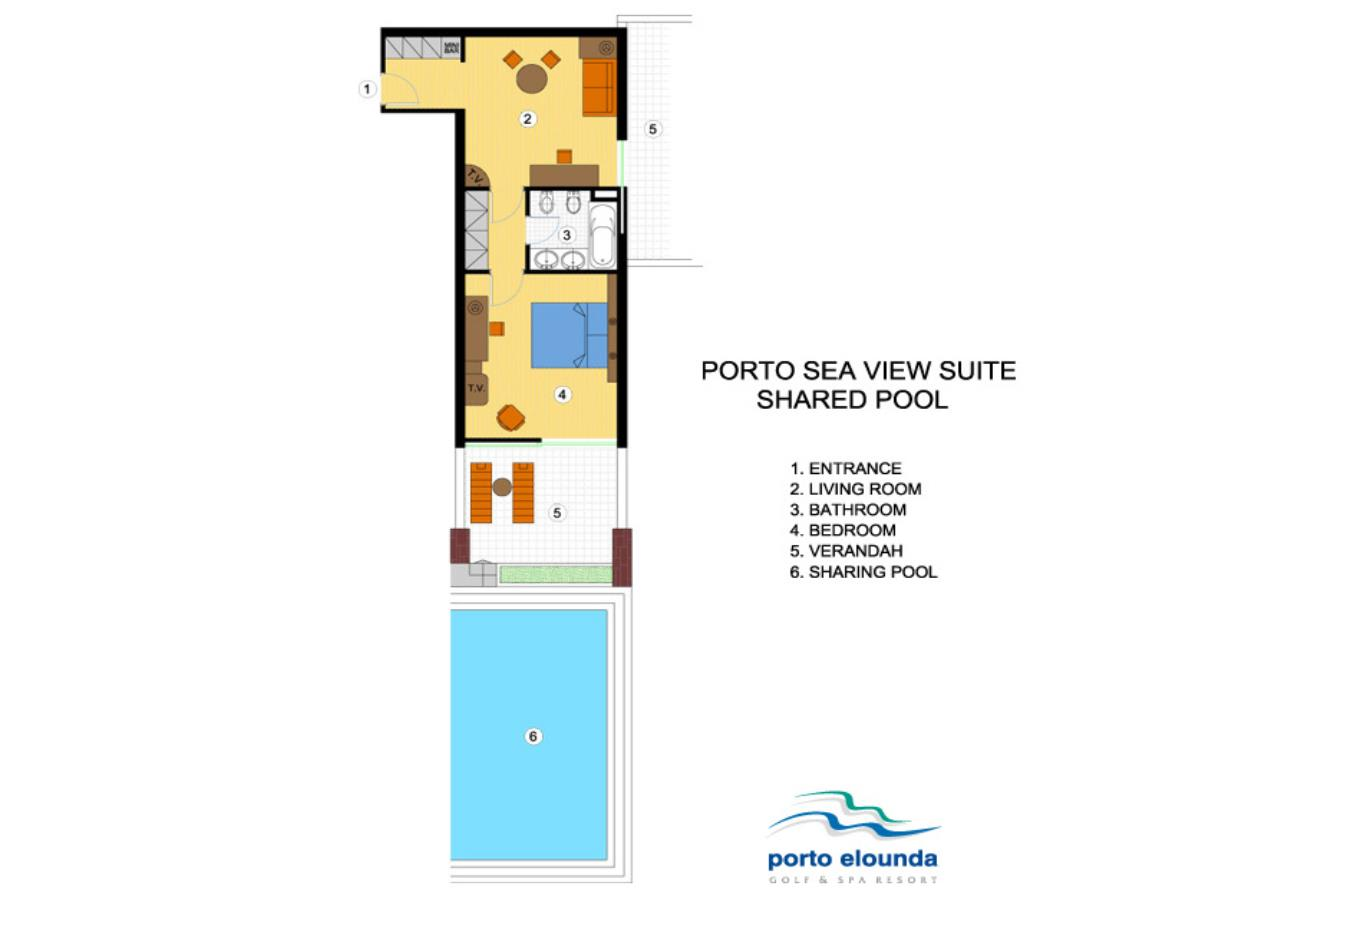 Porto Sea View Suite Shared Pool floorplan